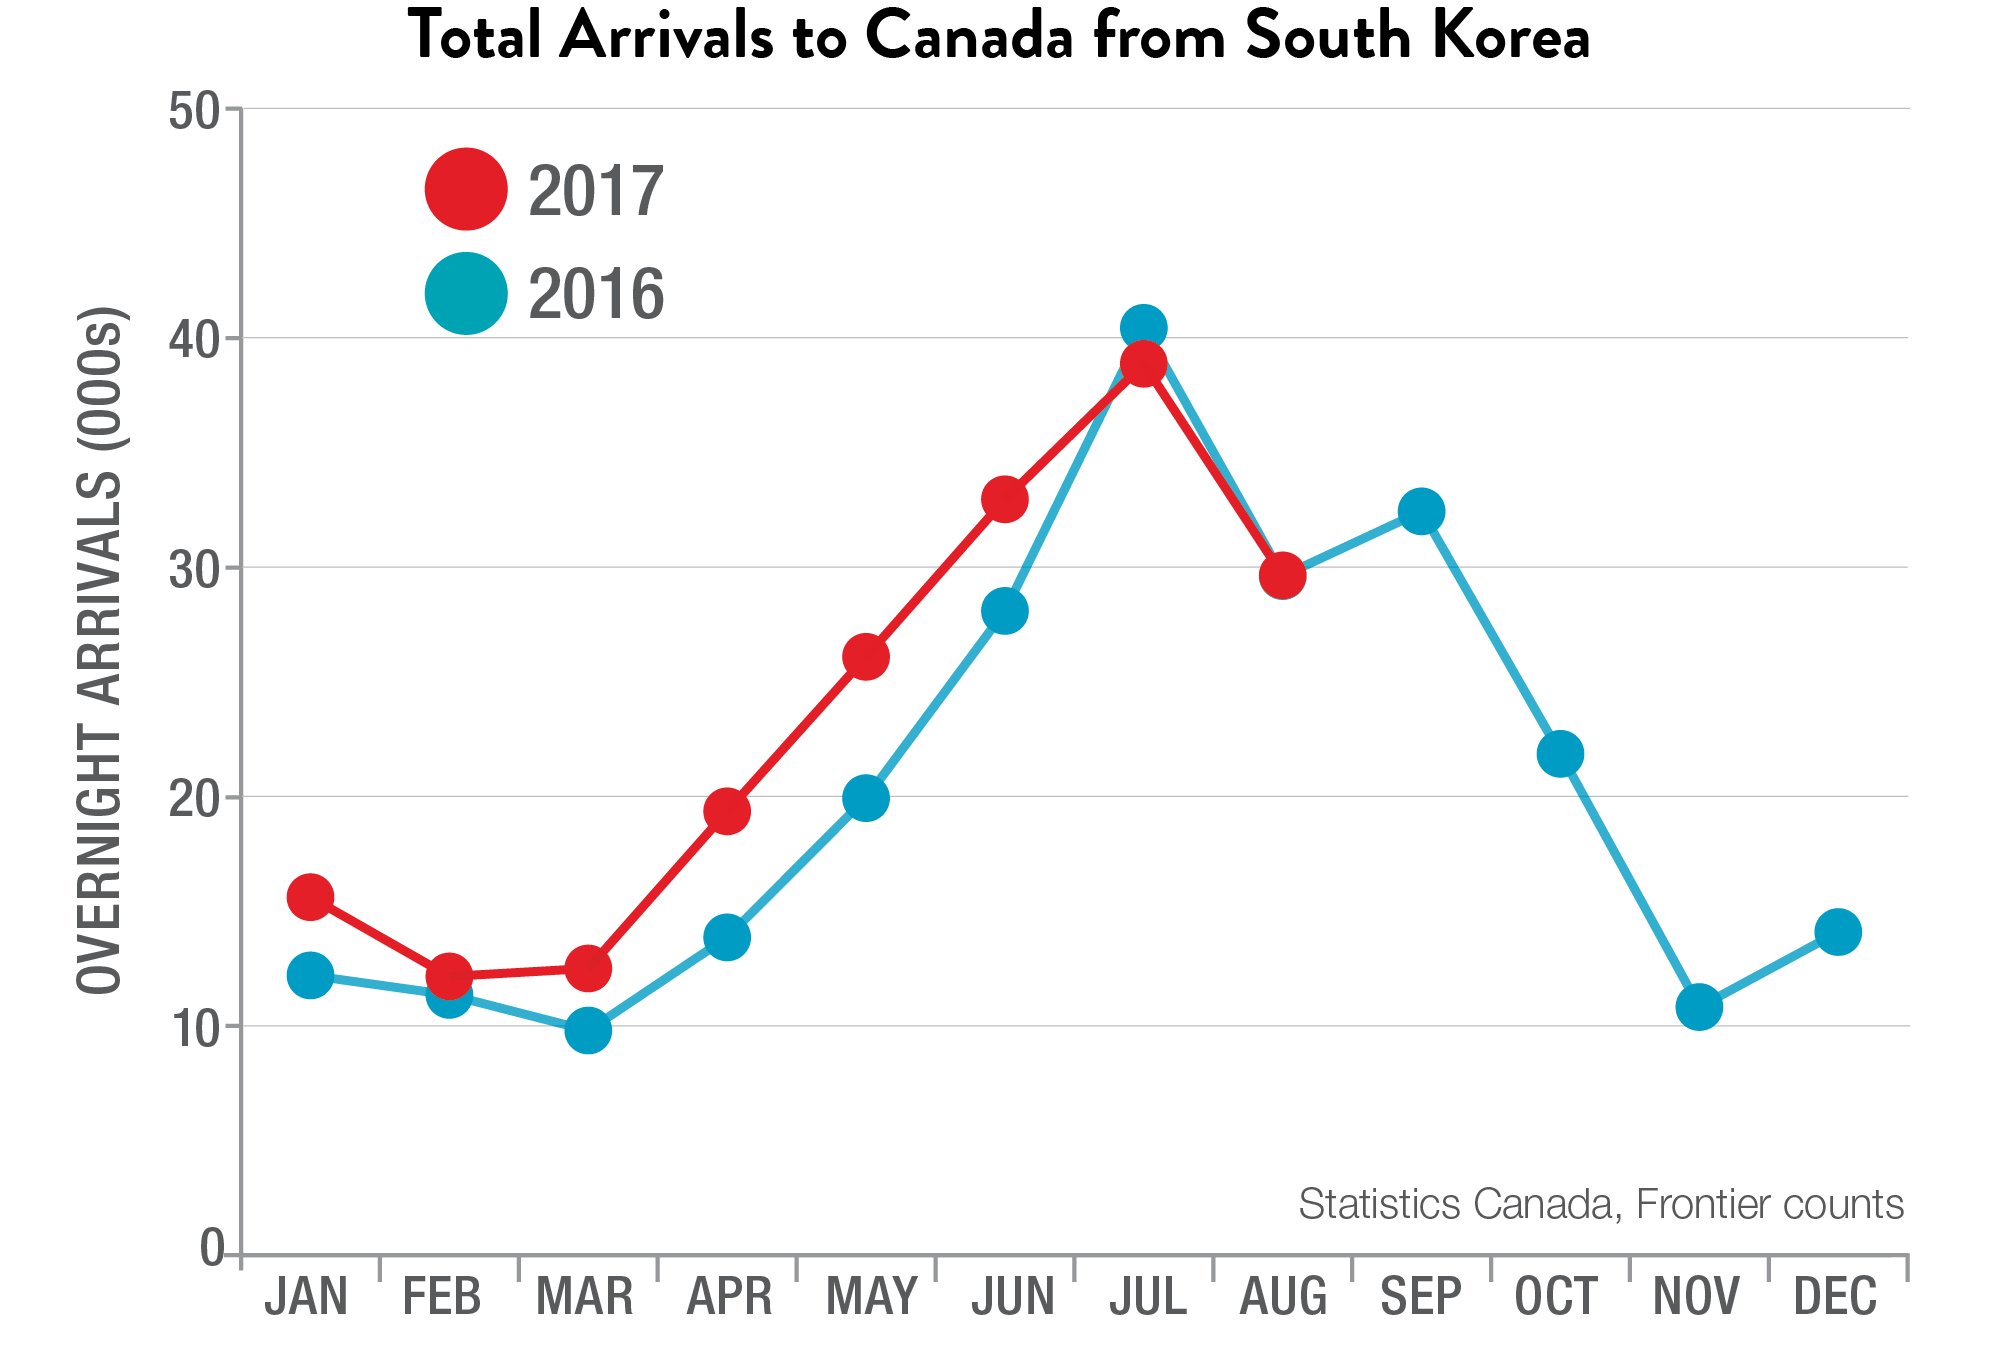 Total Arrivals to Canada from South Korea